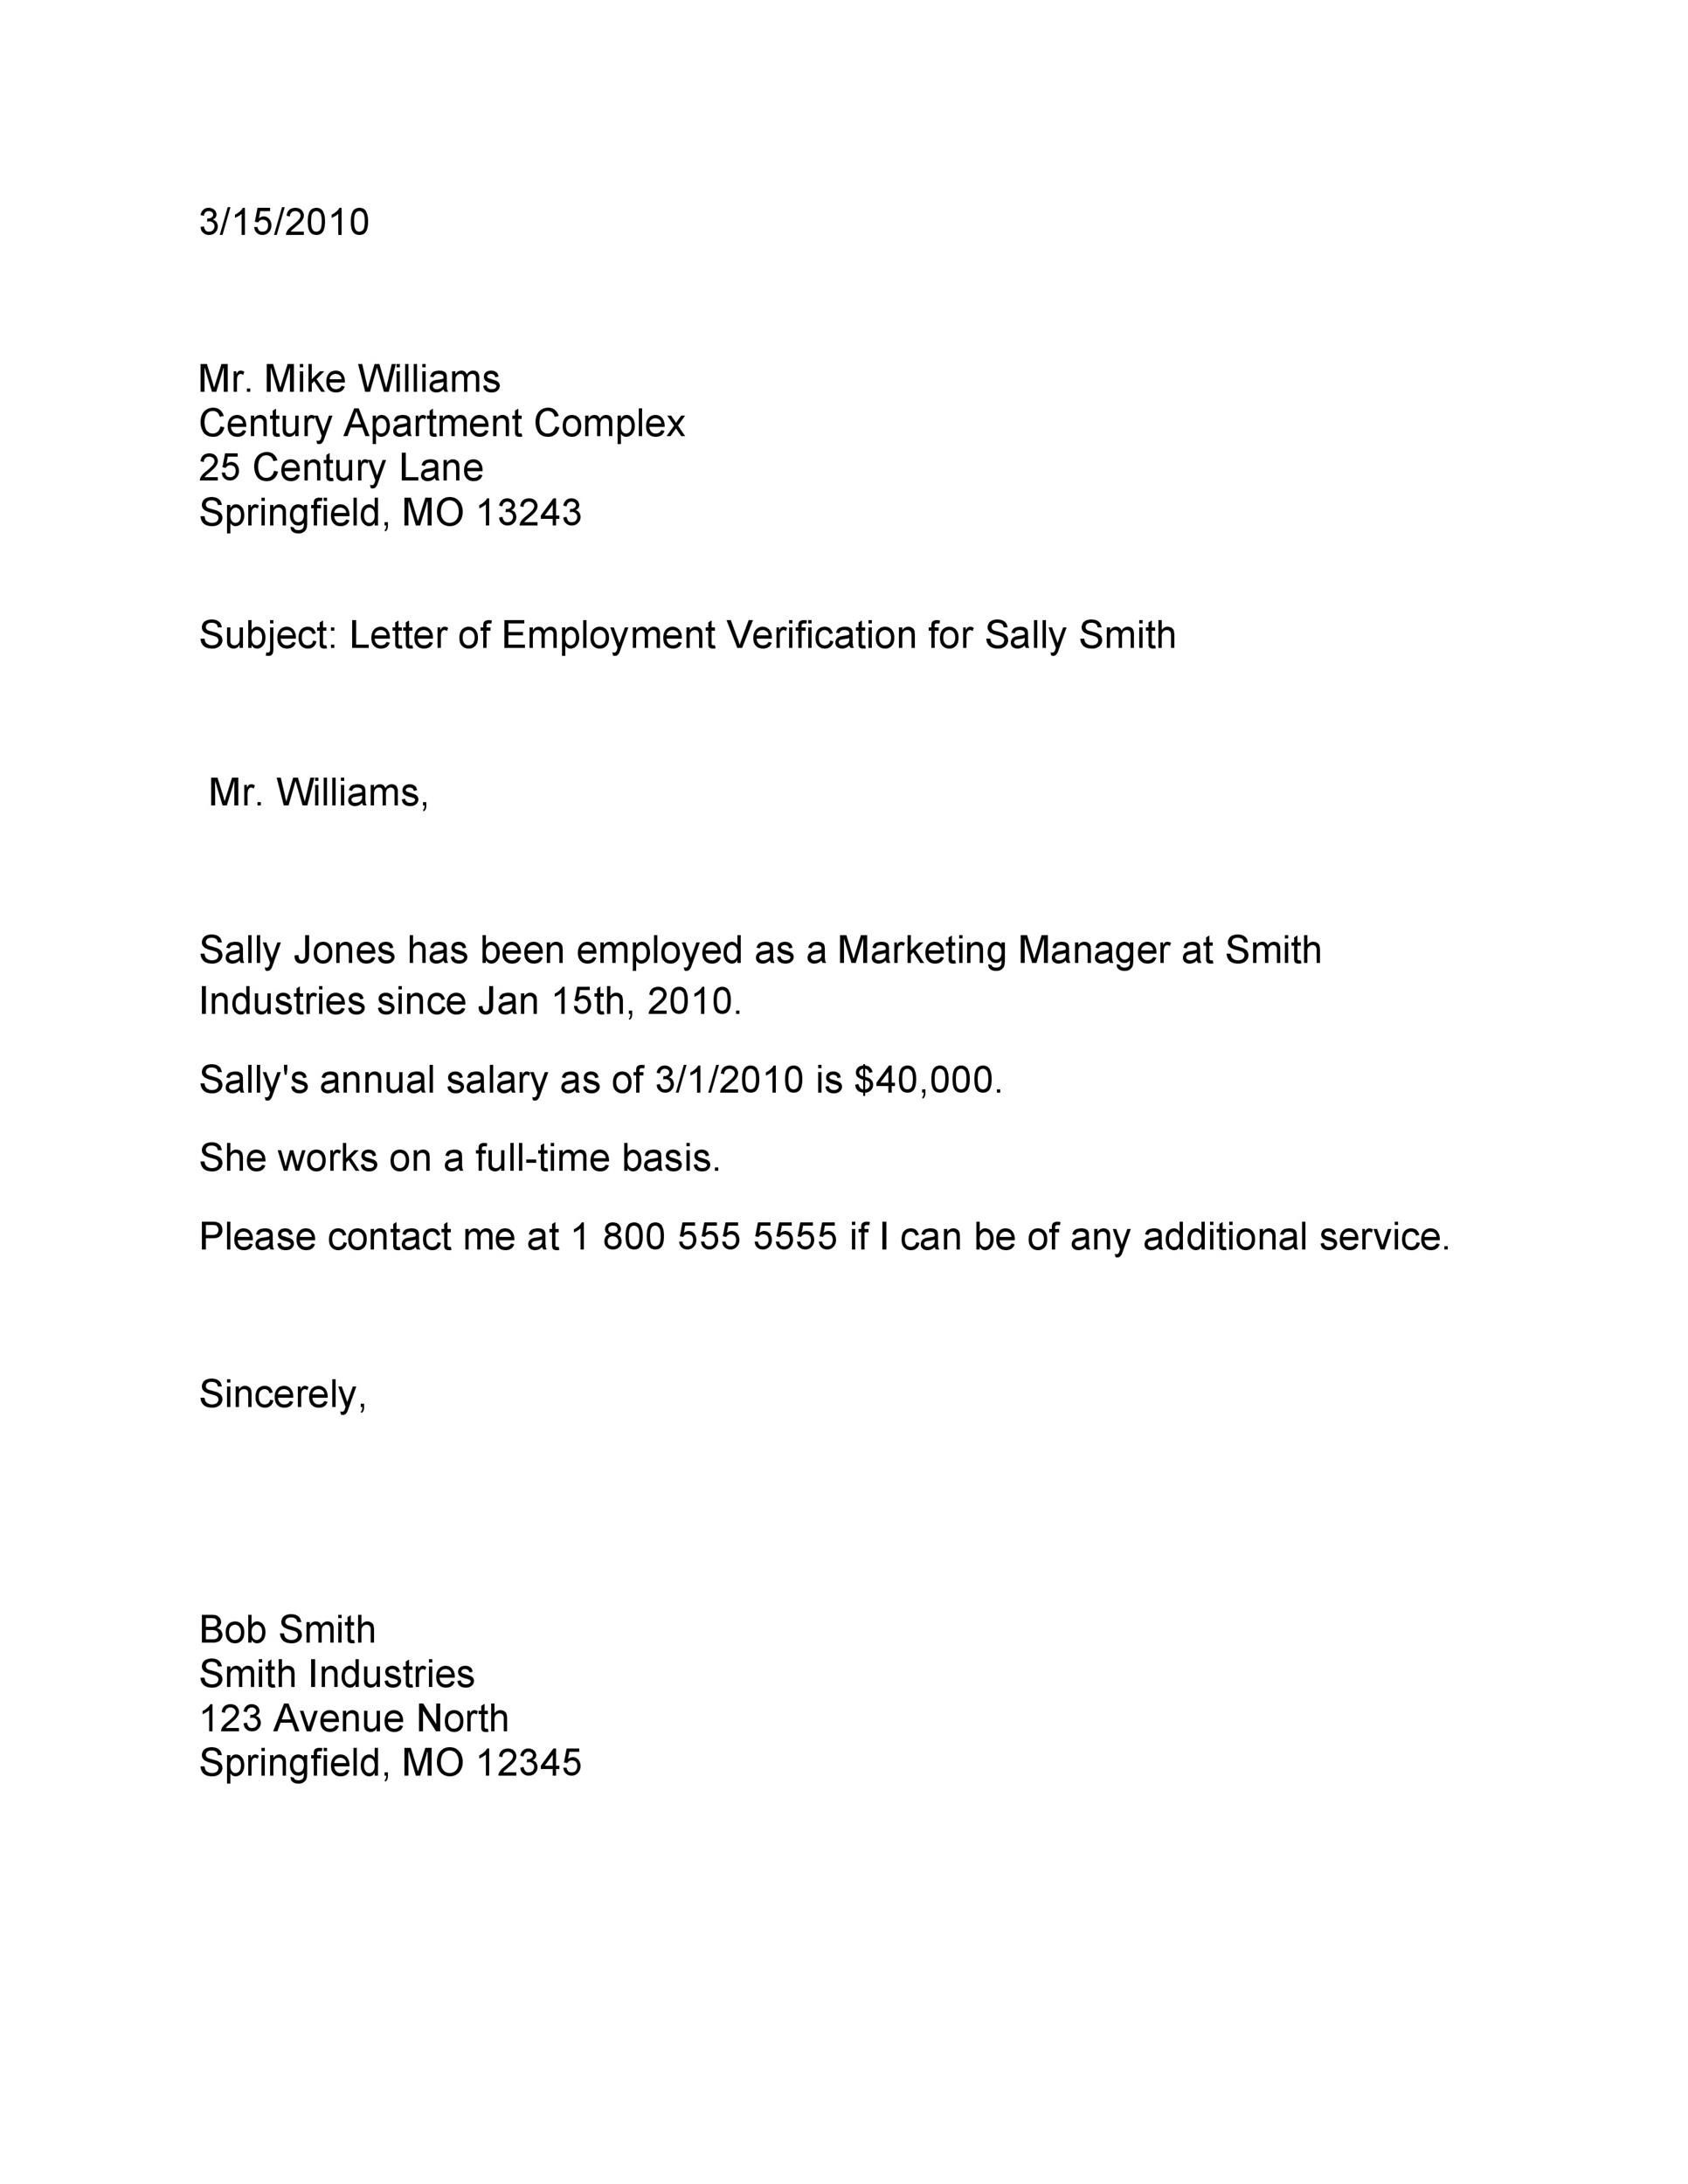 003 Marvelou Confirmation Of Employment Letter Template Nz Example Full